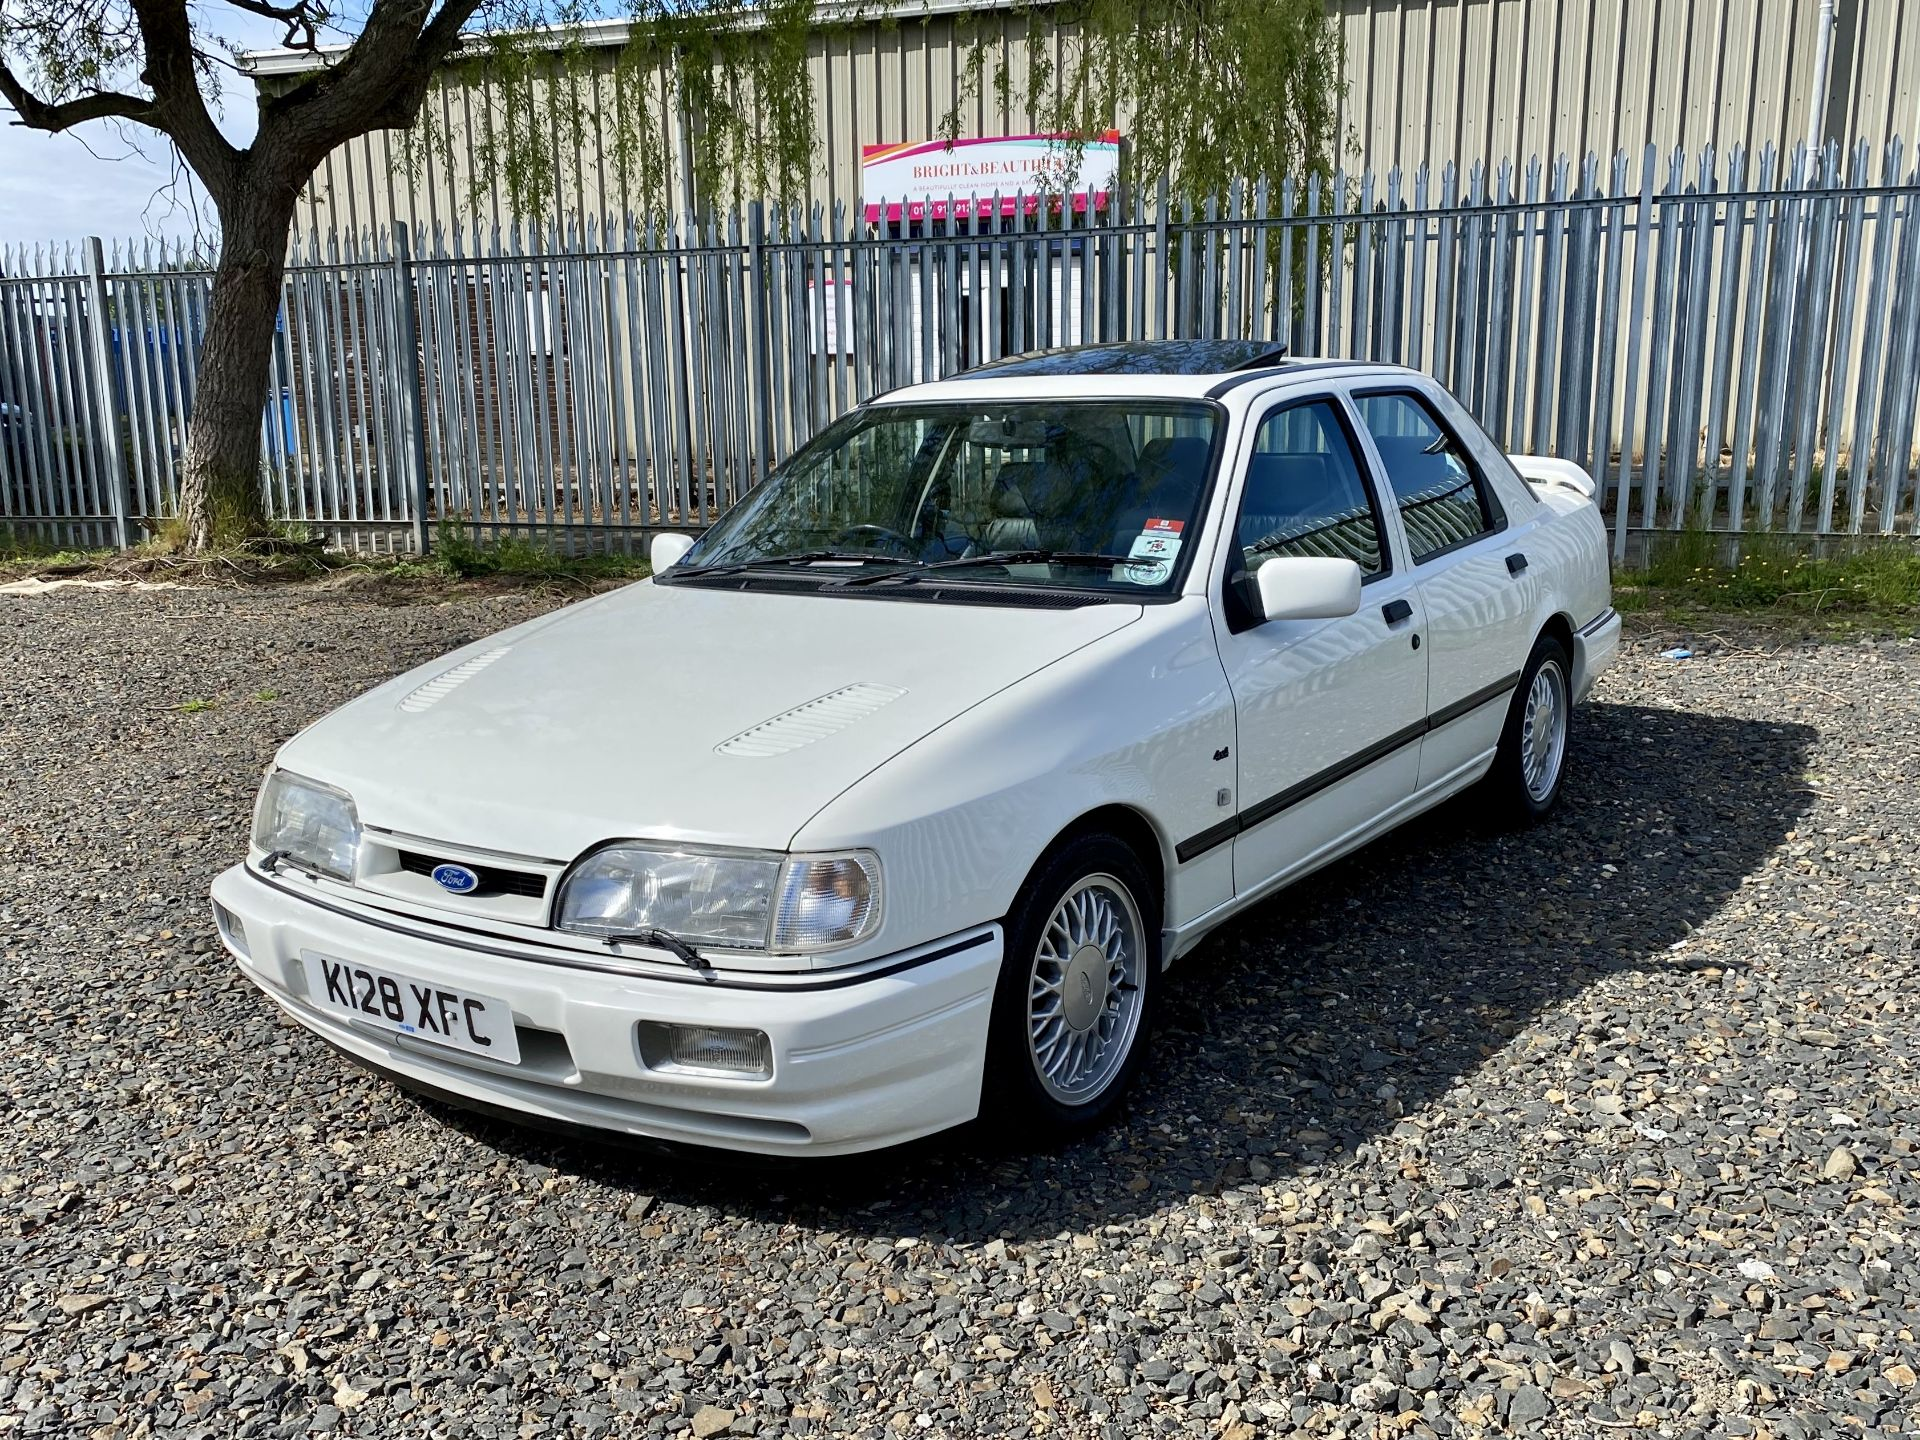 Ford Sierra Sapphire Cosworth 4x4 - Image 15 of 55